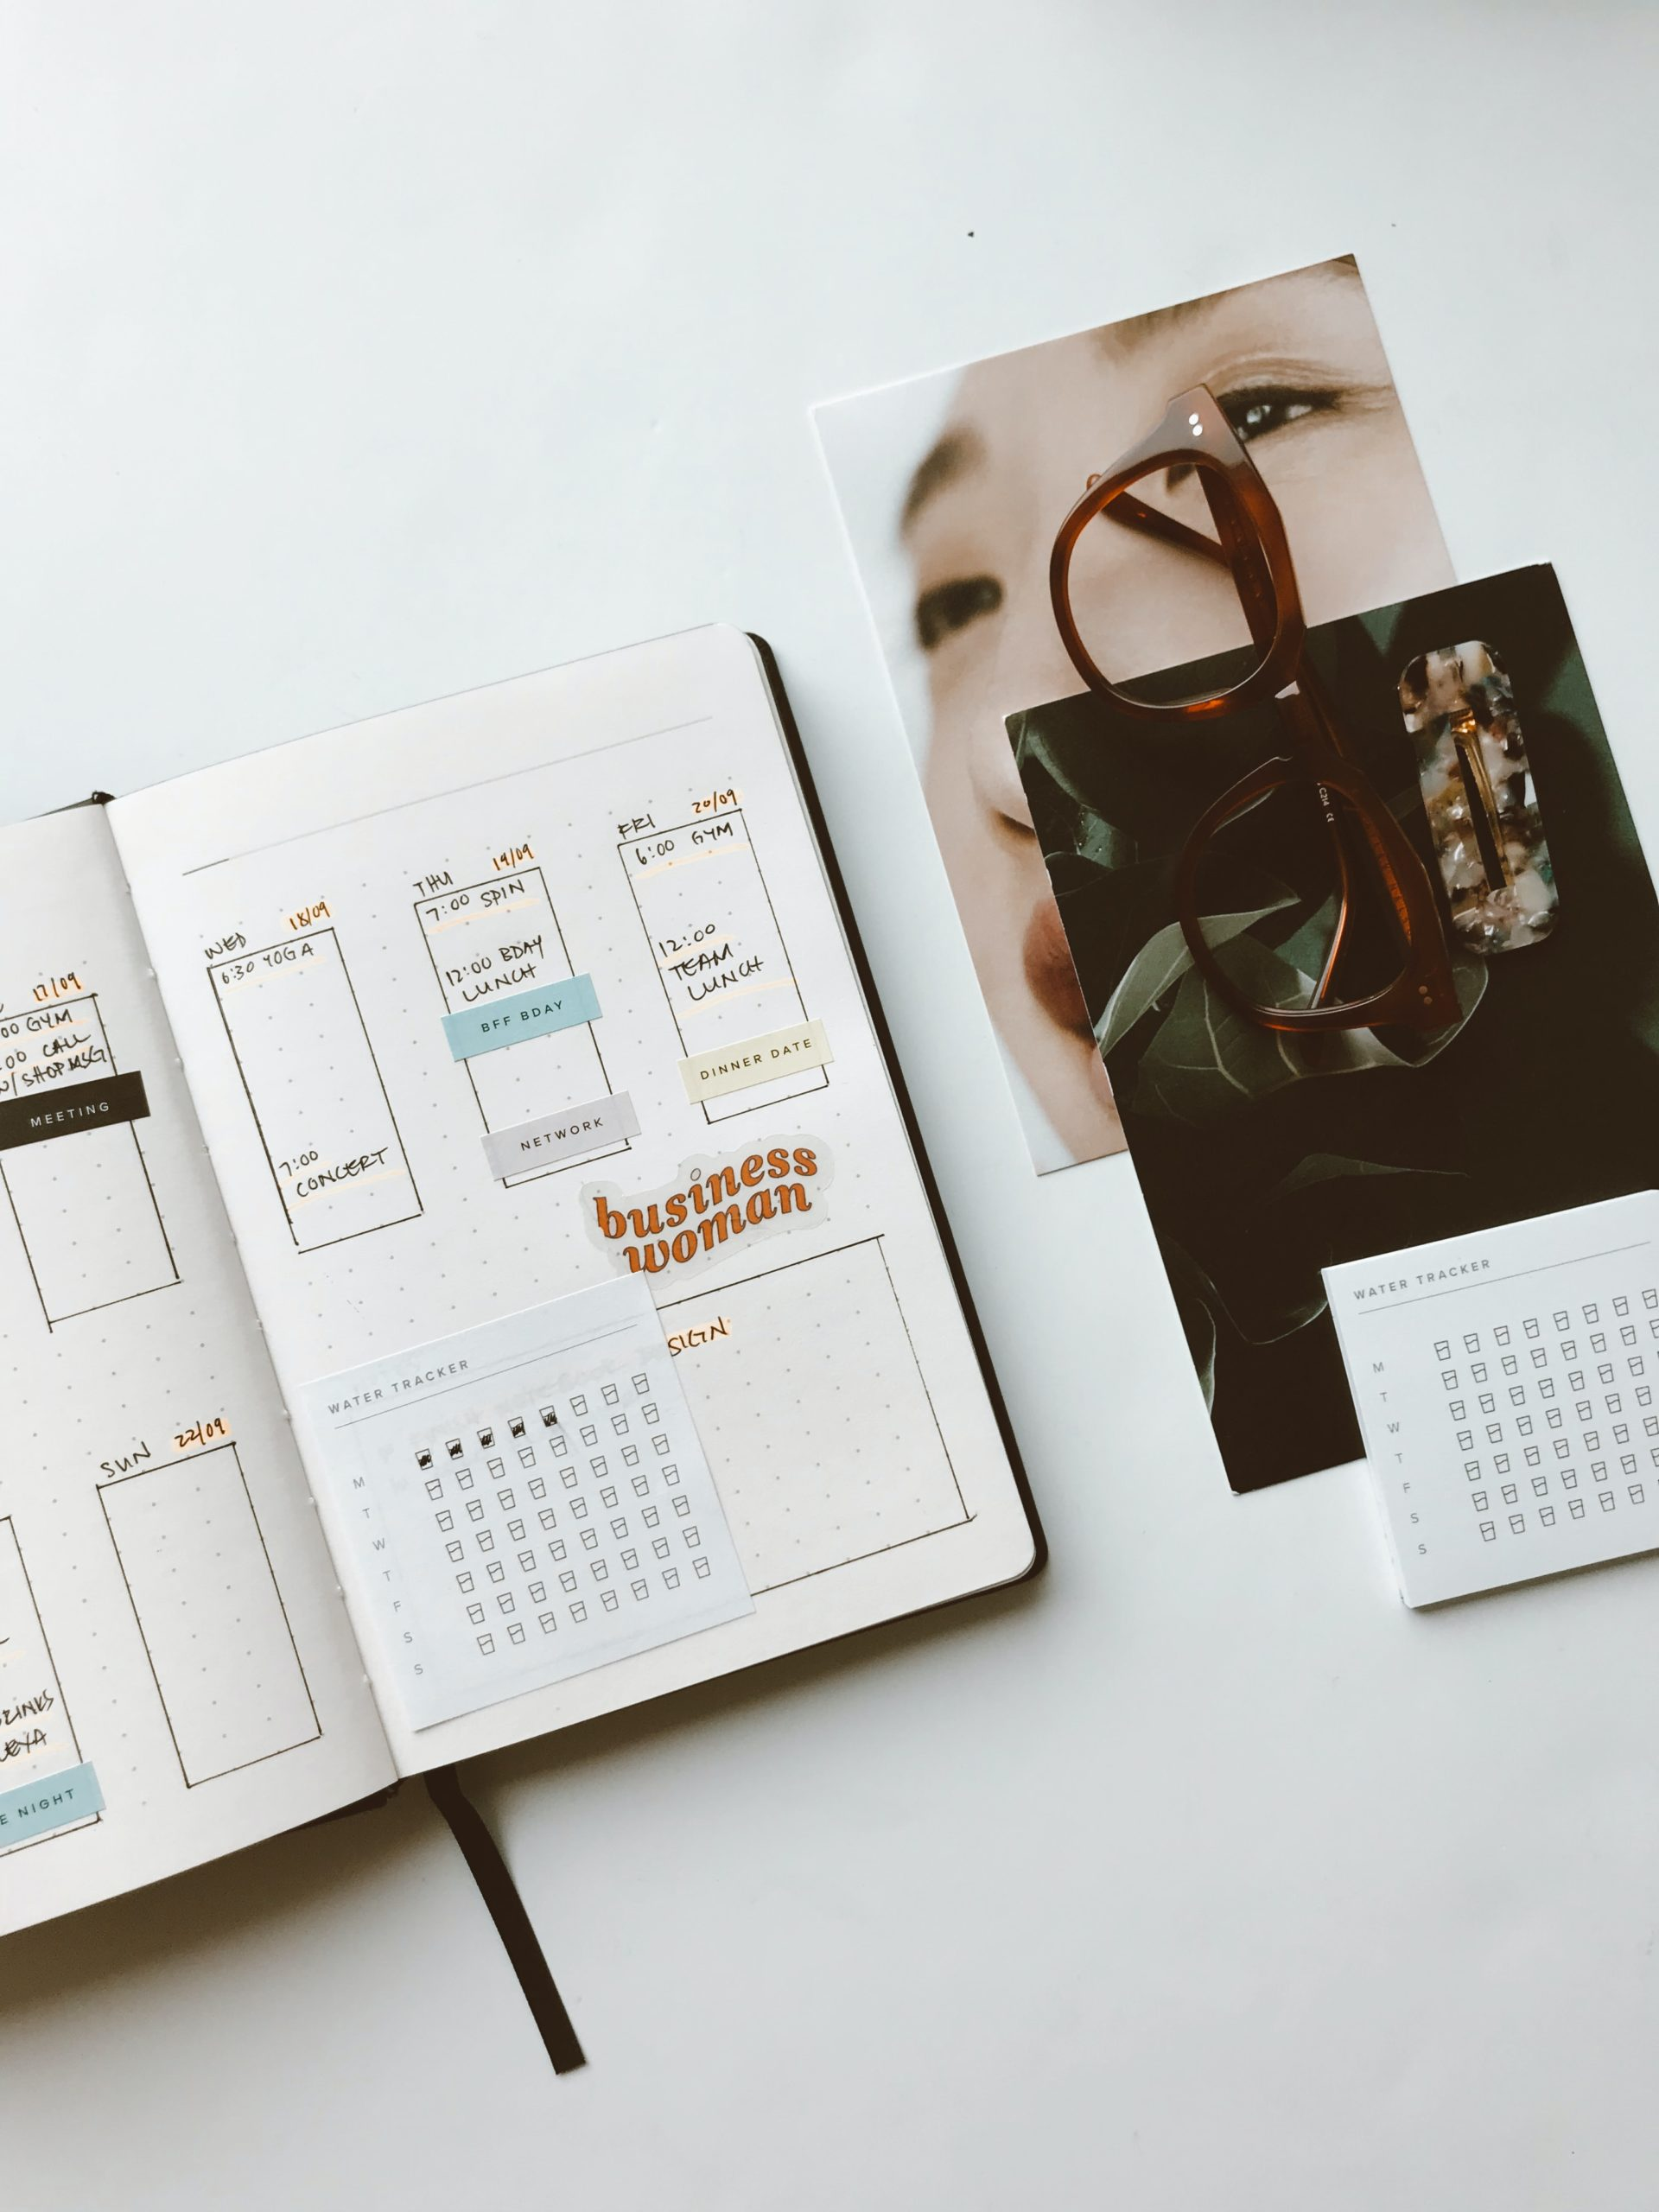 Calendar diary with images and glasses to save time on social media